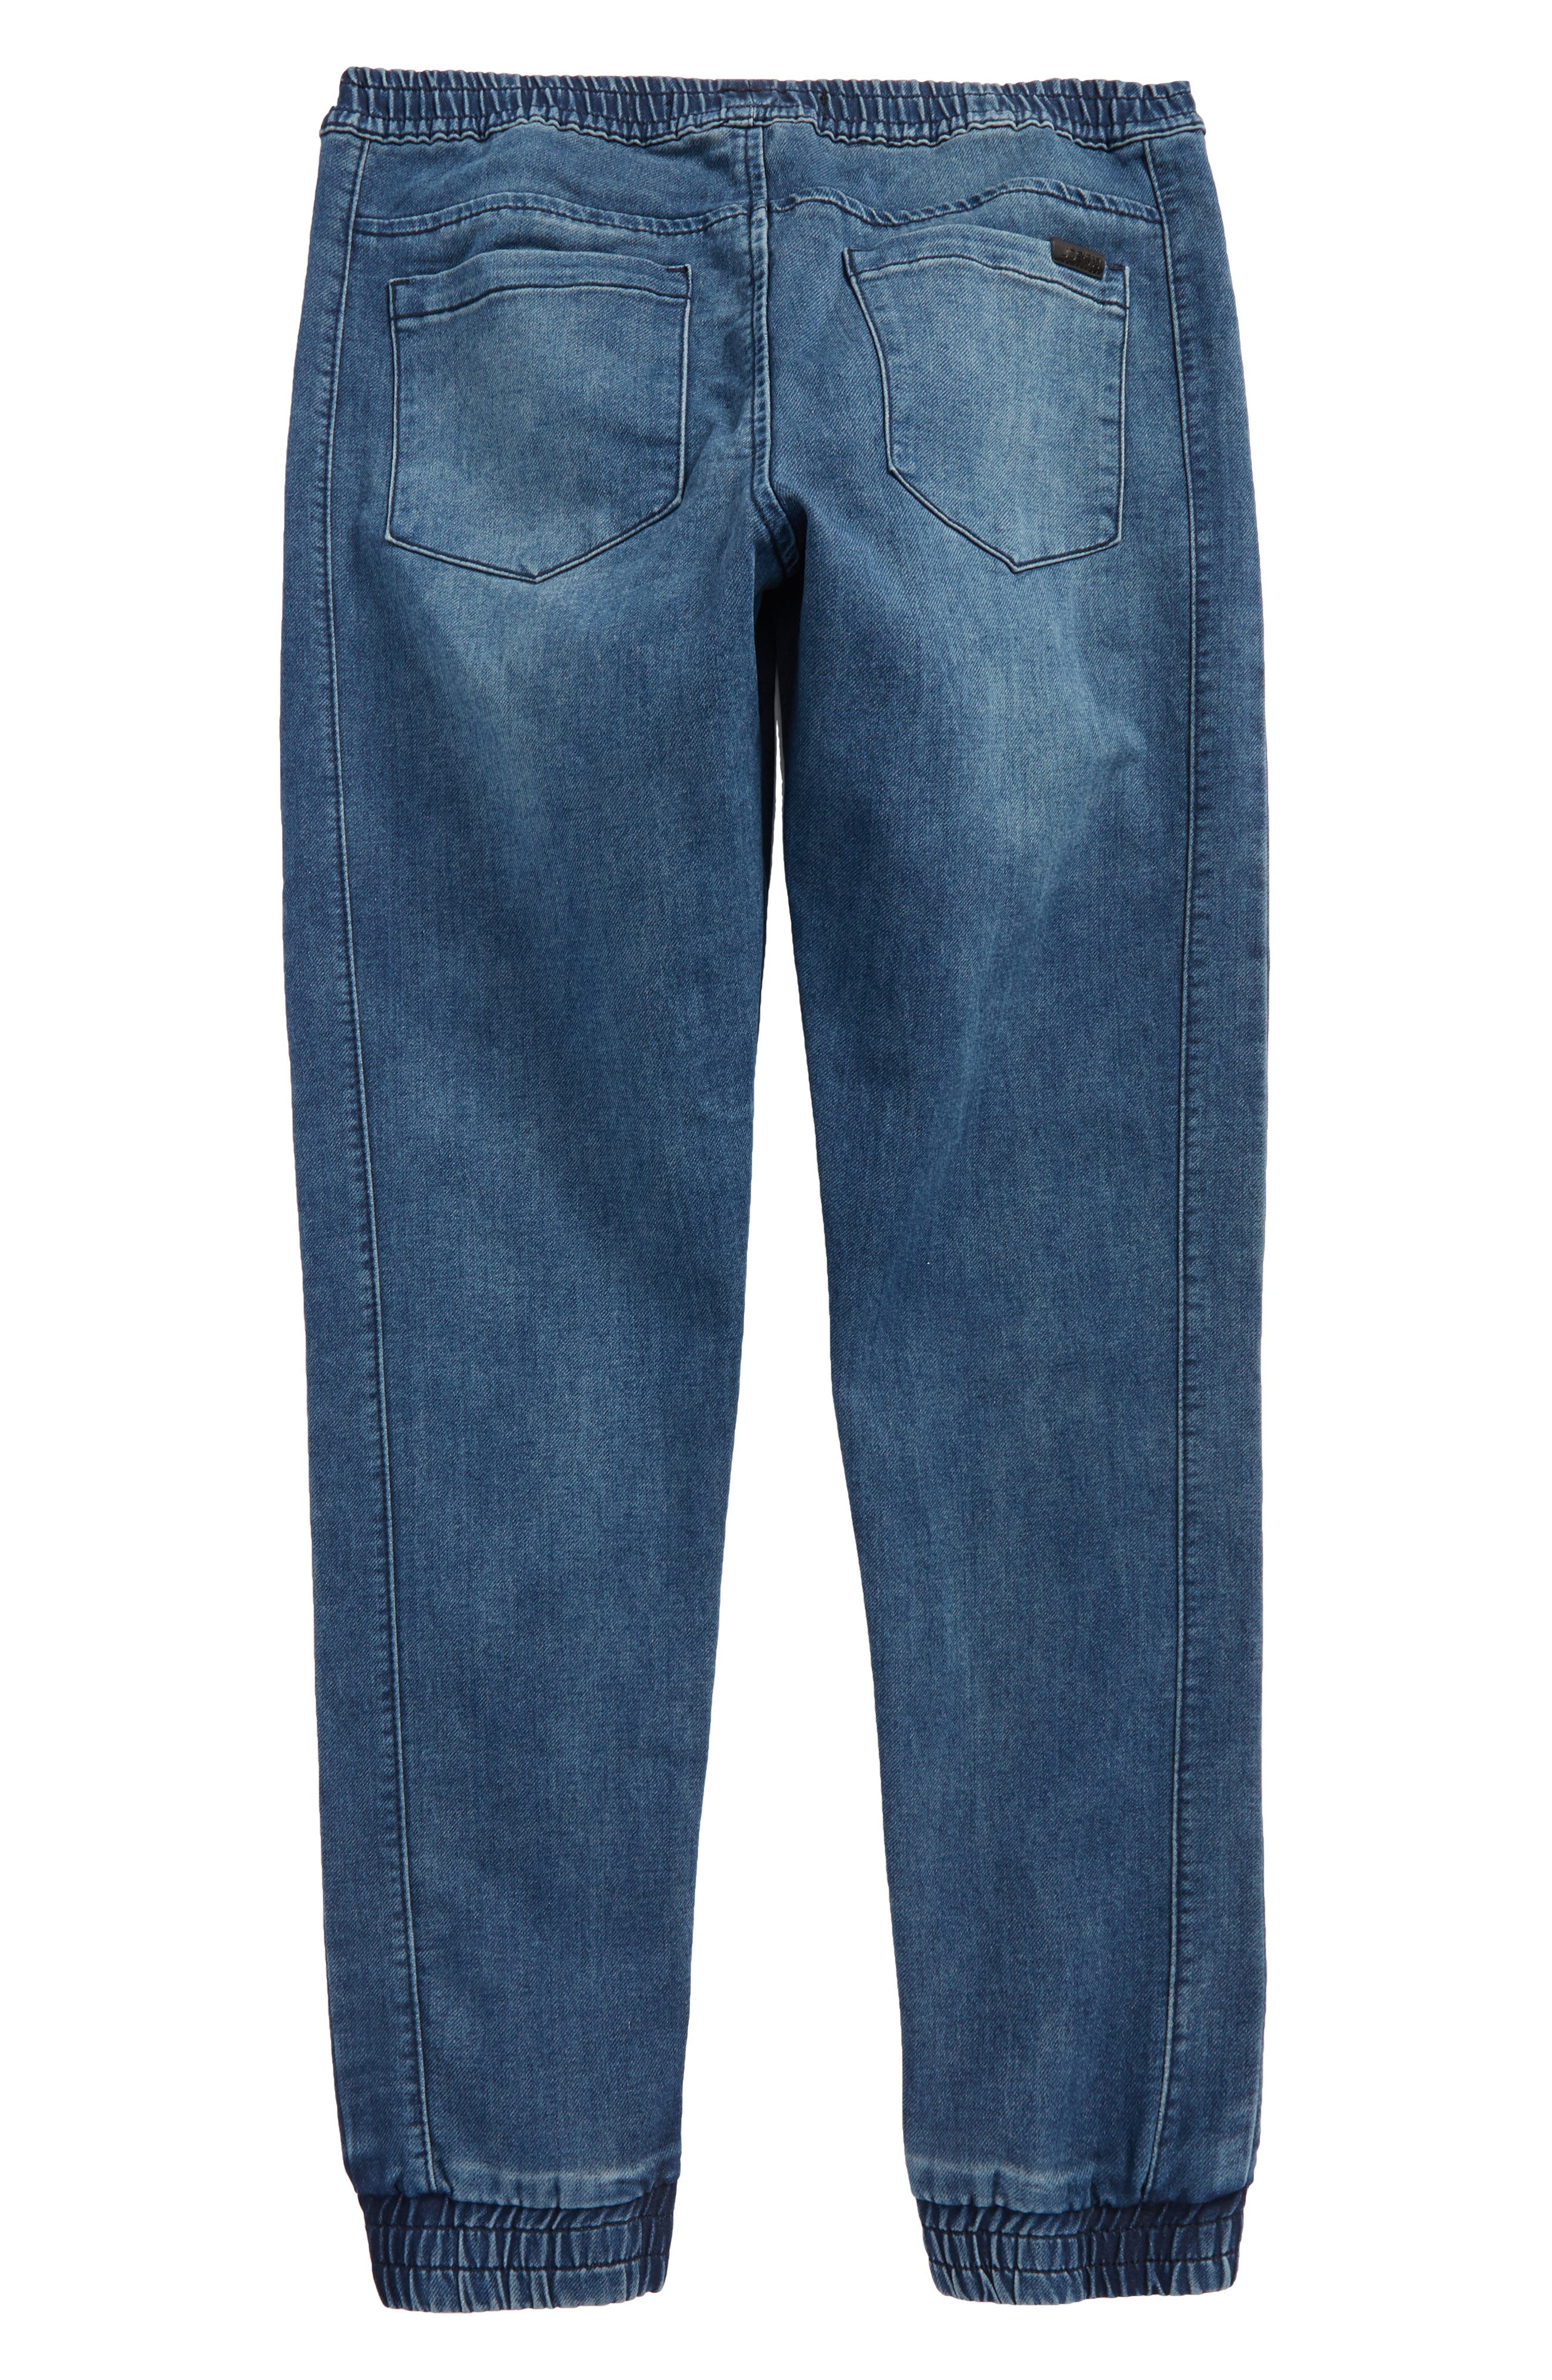 Slim Fit Denim Jogger Pants,                             Alternate thumbnail 2, color,                             Indigo